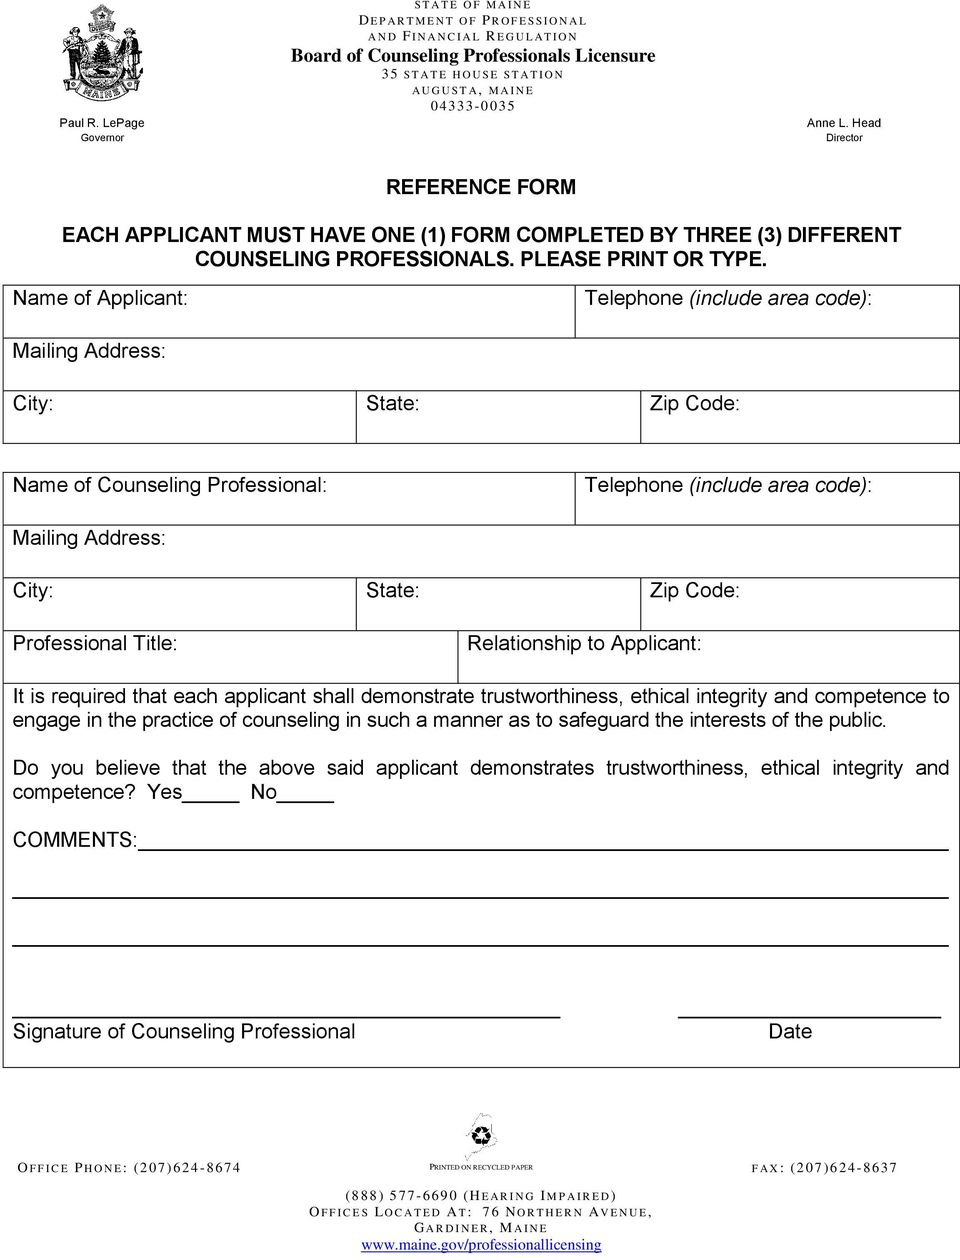 S T A T I O N A U G U S T A, M A I N E 04333-0 0 3 5 Anne L. Head Director REFERENCE FORM EACH APPLICANT MUST HAVE ONE (1) FORM COMPLETED BY THREE (3) DIFFERENT COUNSELING PROFESSIONALS.